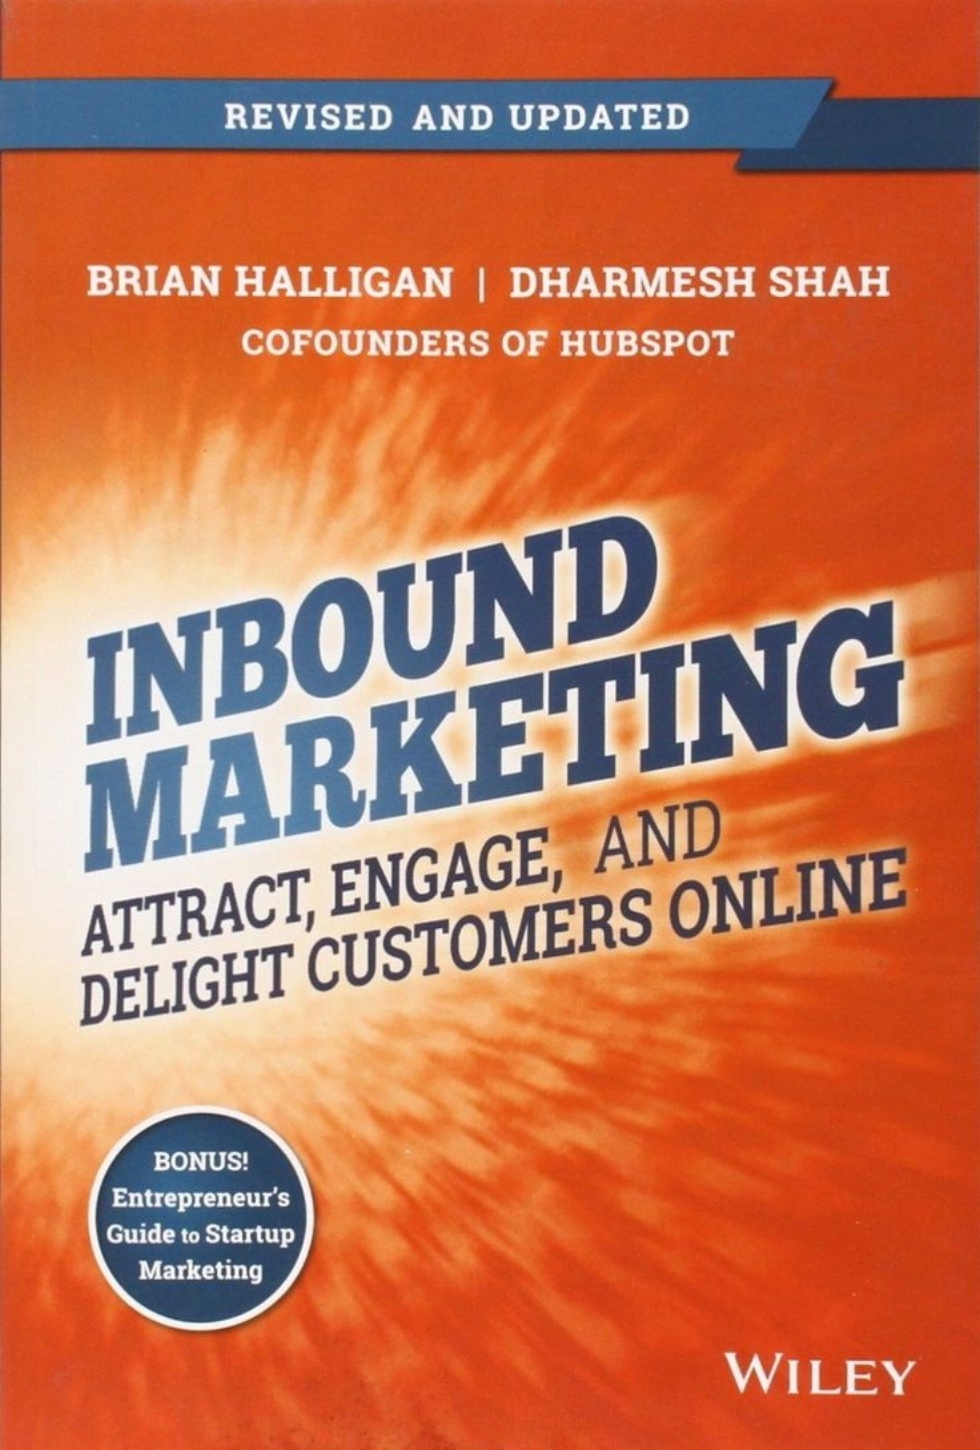 Inbound Marketing. Brian Halligan y Dharmesh Shah